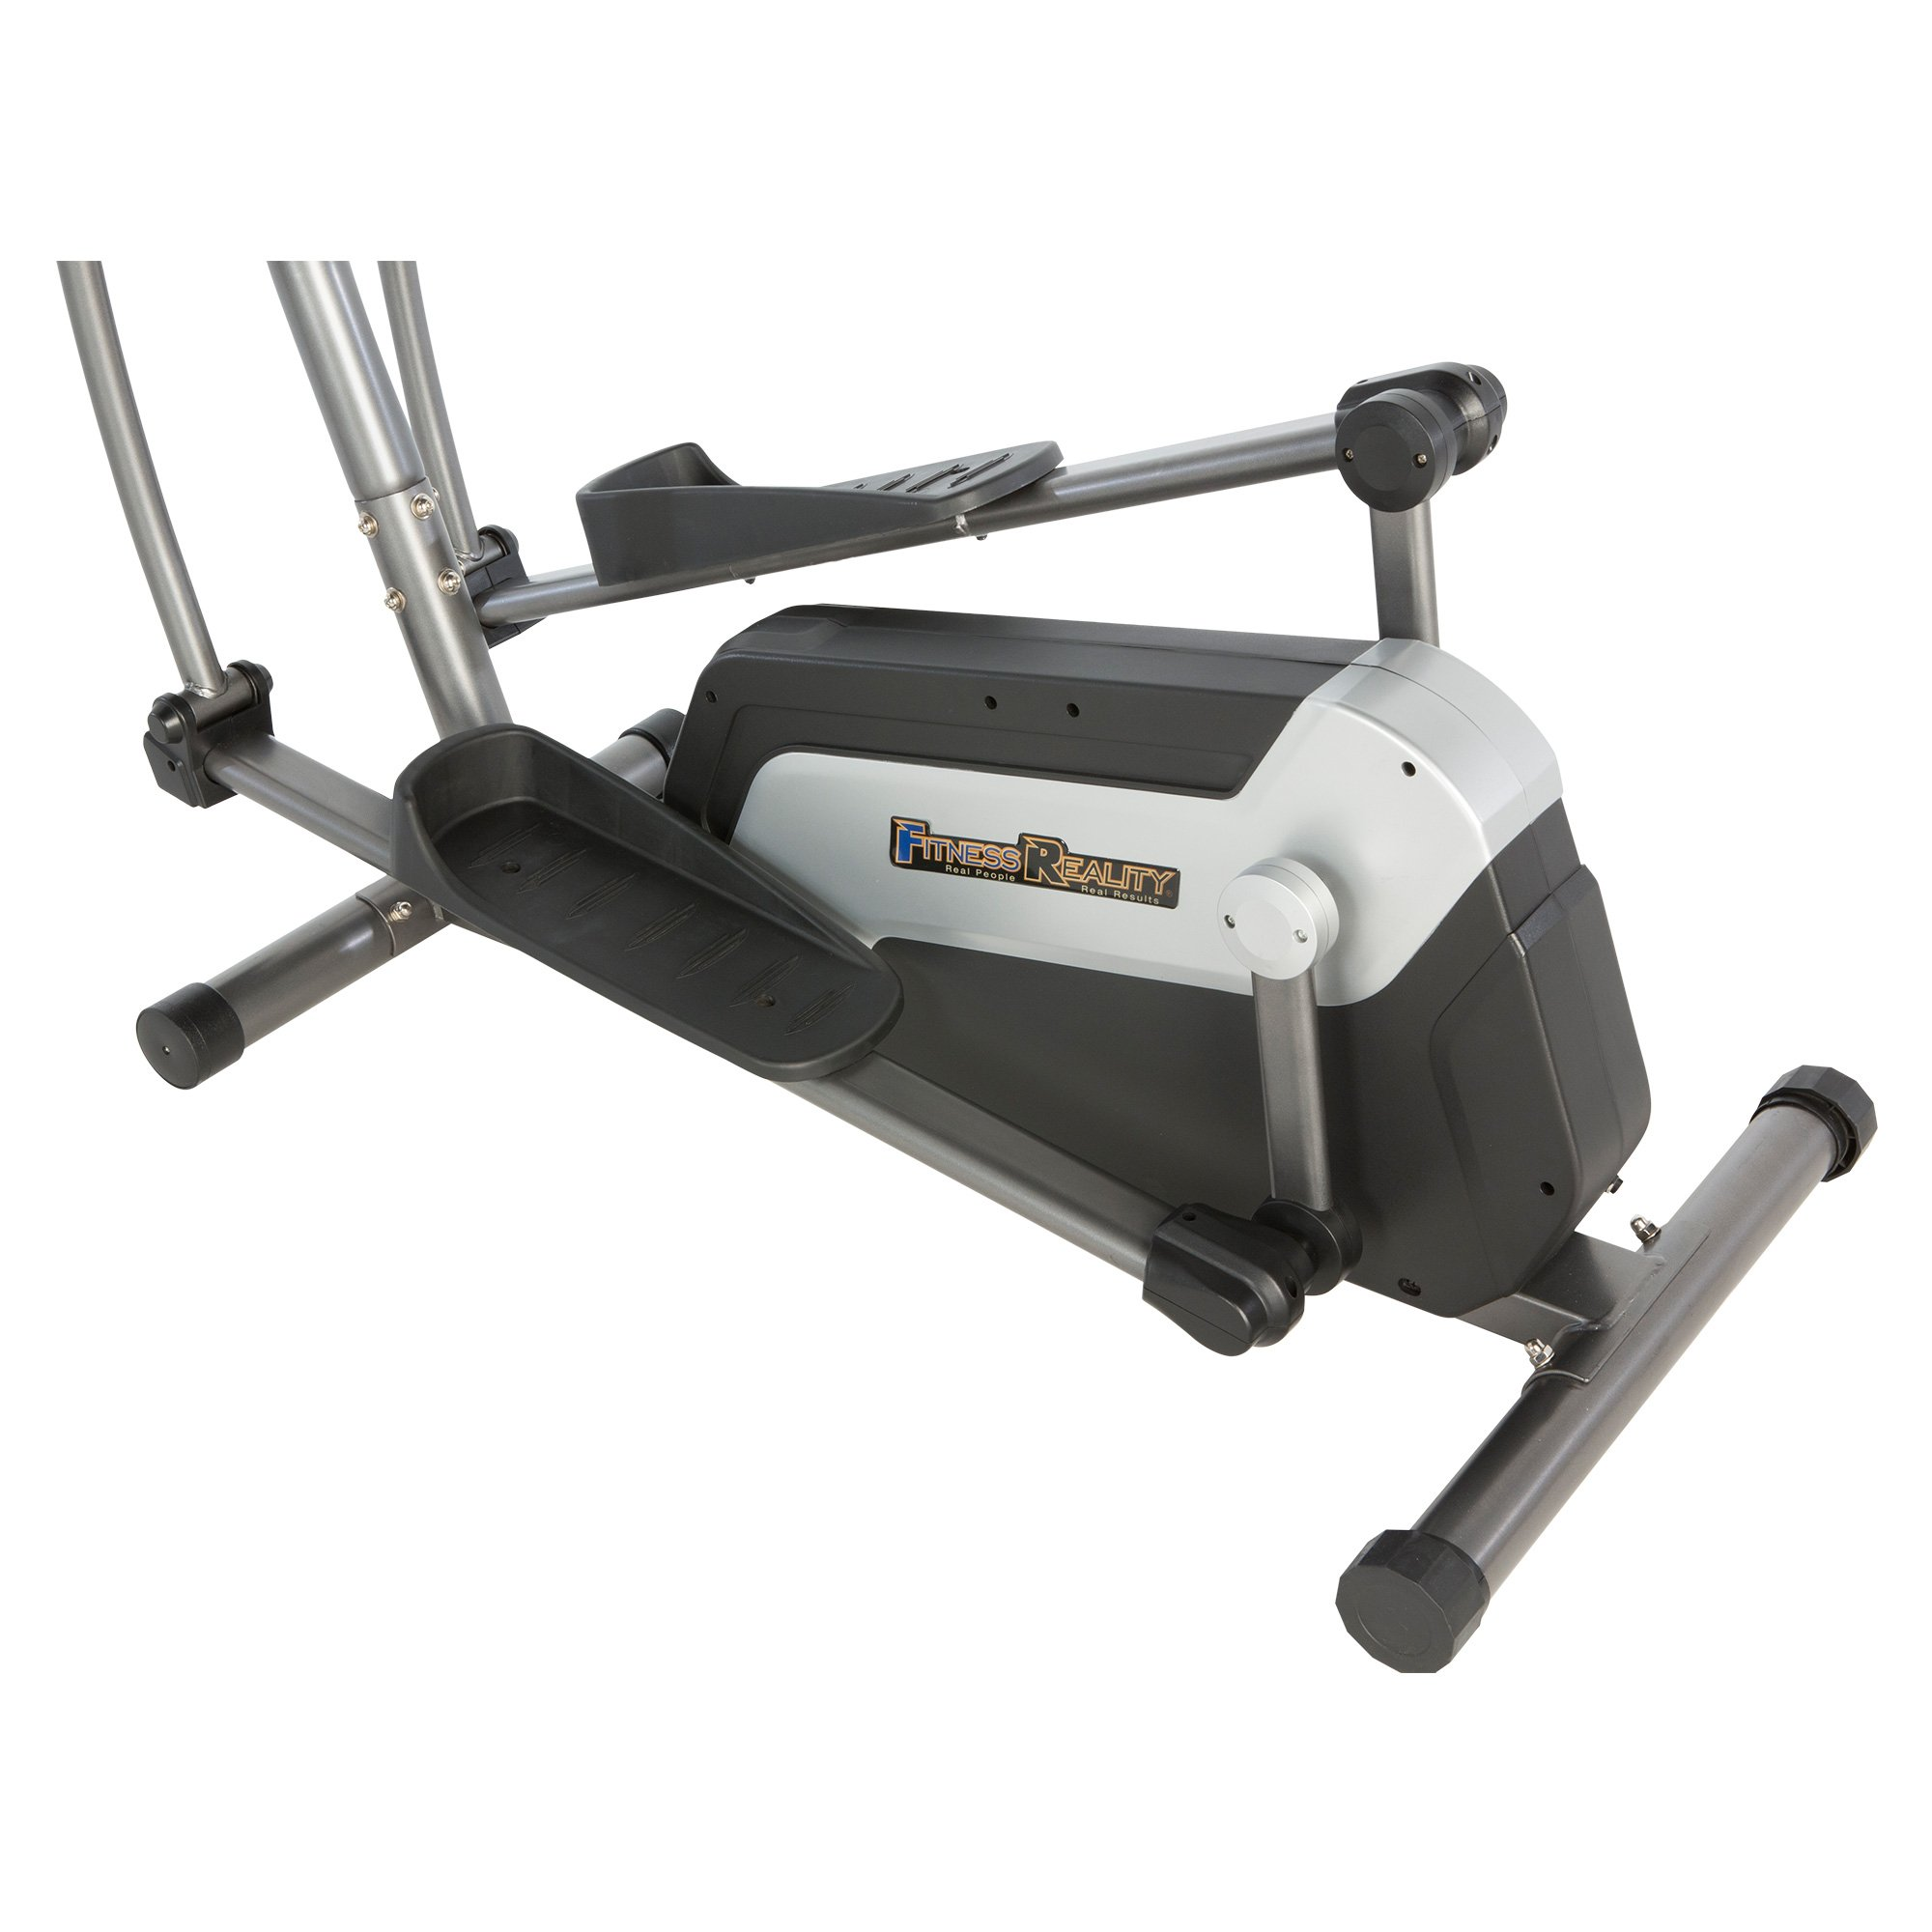 Fitness Reality E5500XL Magnetic Elliptical Trainer with Comfortable 18'' Stride by Fitness Reality (Image #6)